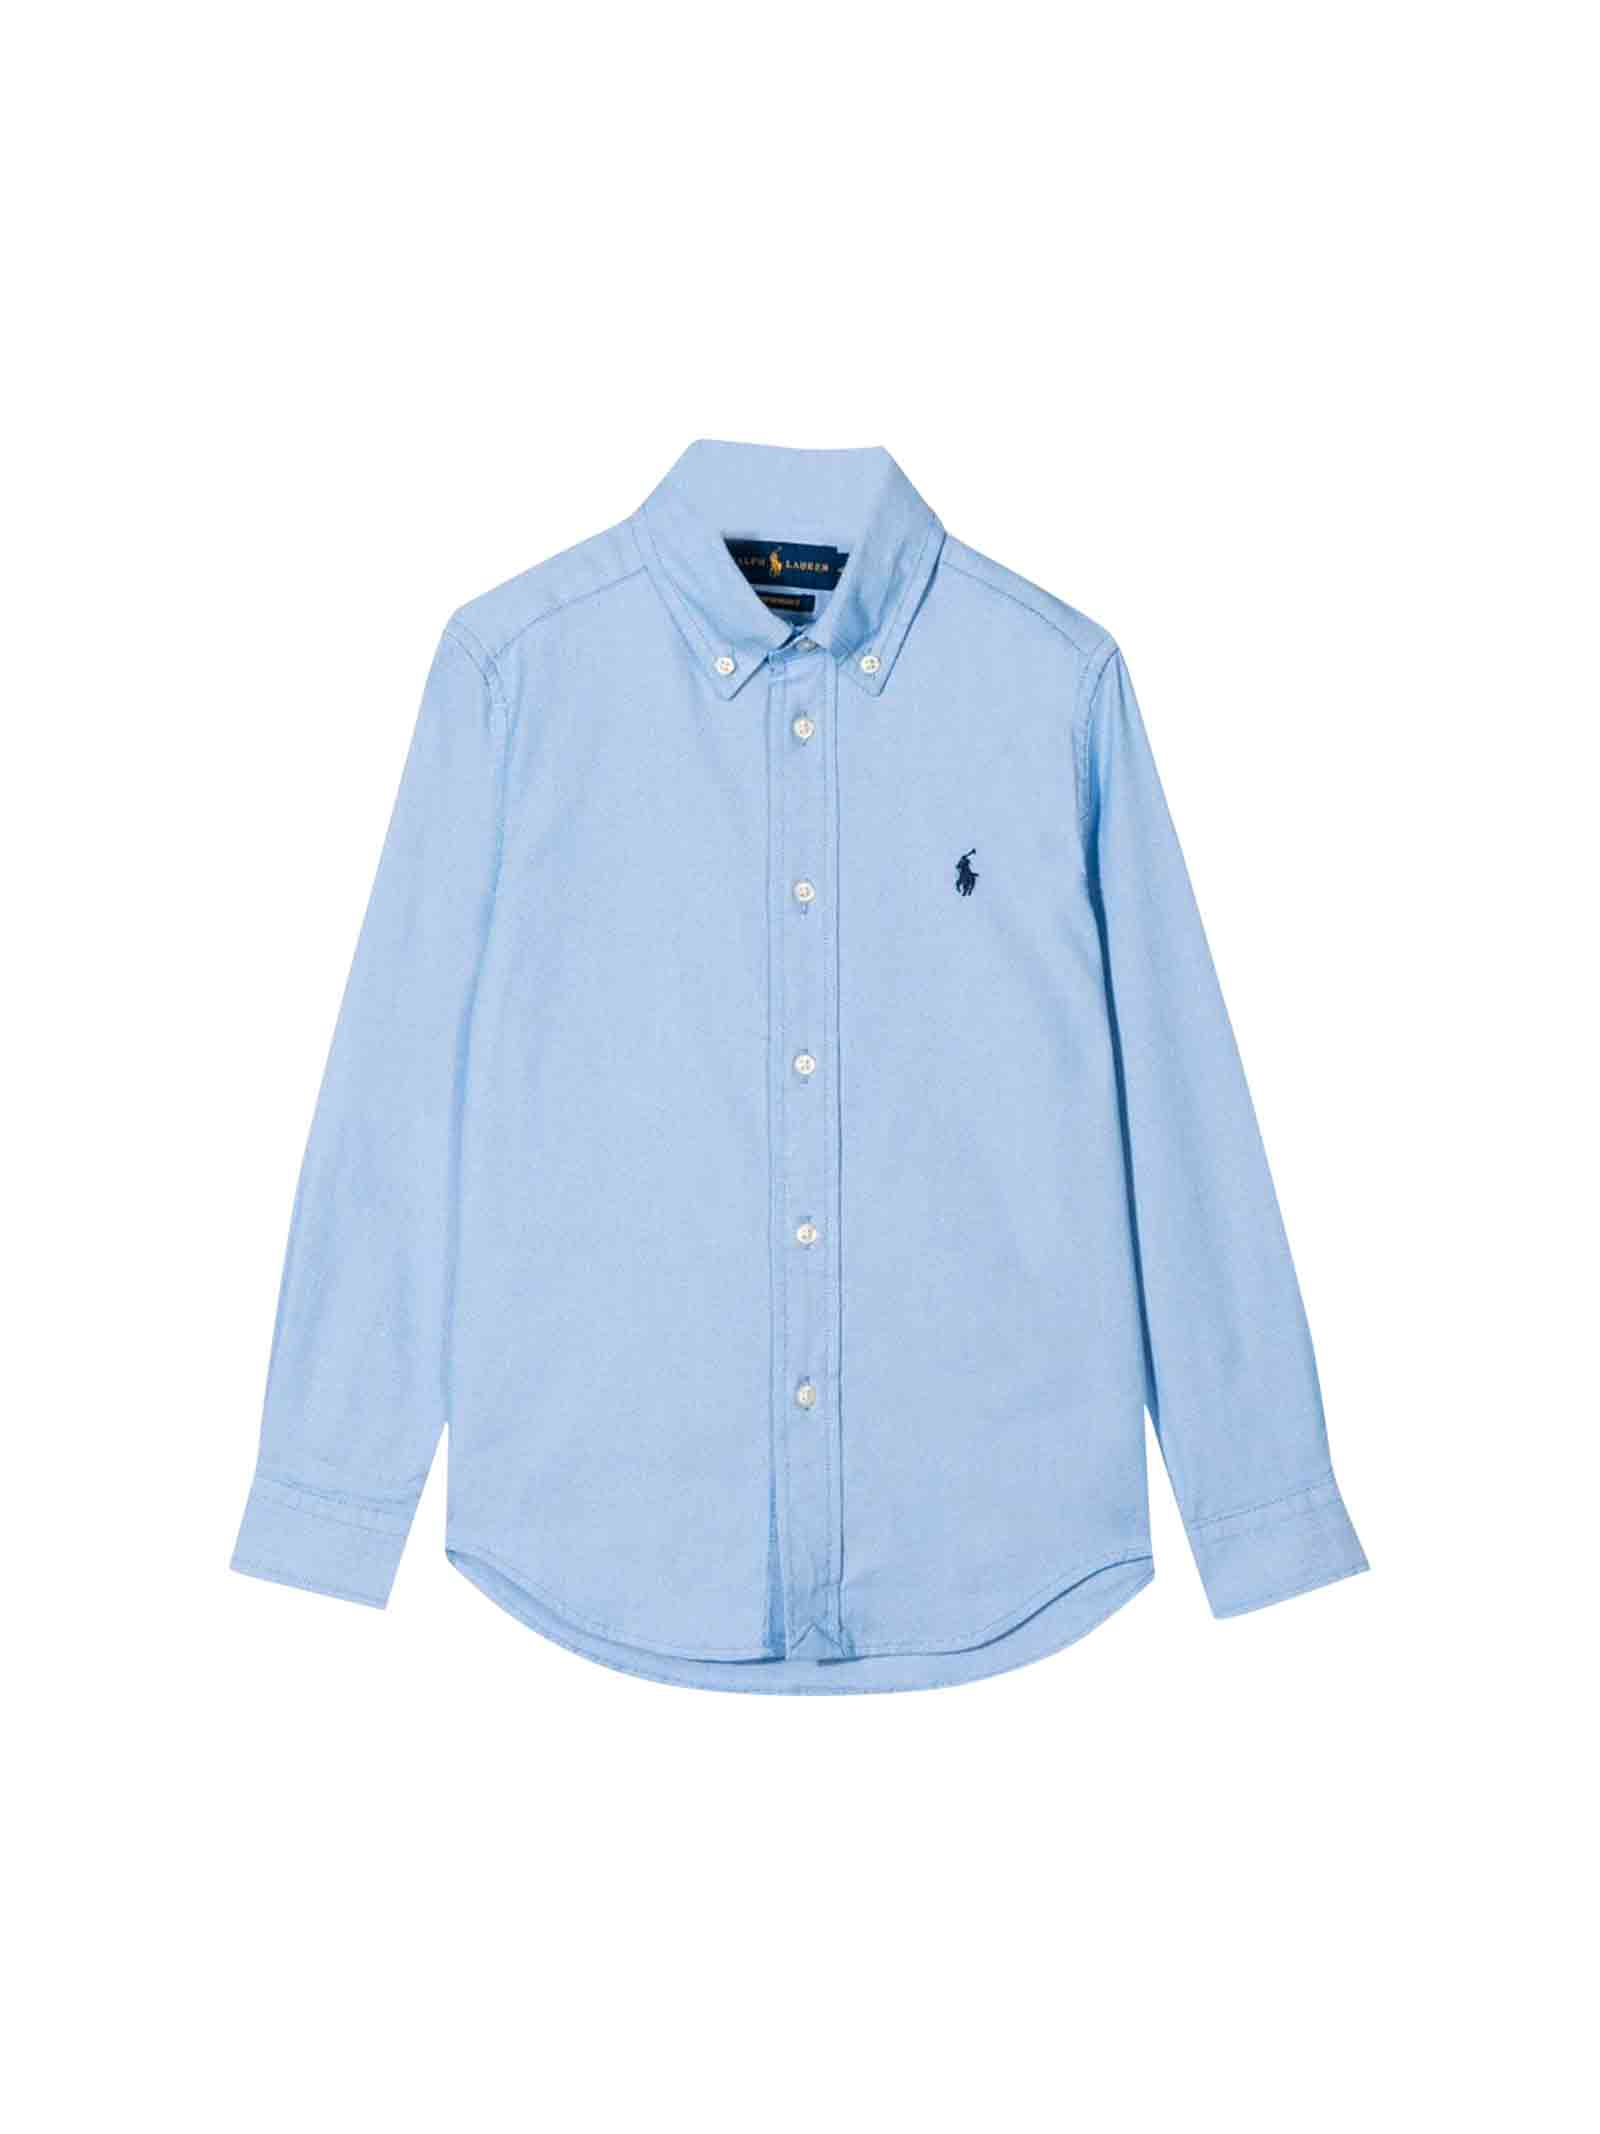 huge selection of 27b88 0a475 Camicia azzurra bambino Ralph Lauren kids - RALPH LAUREN ...